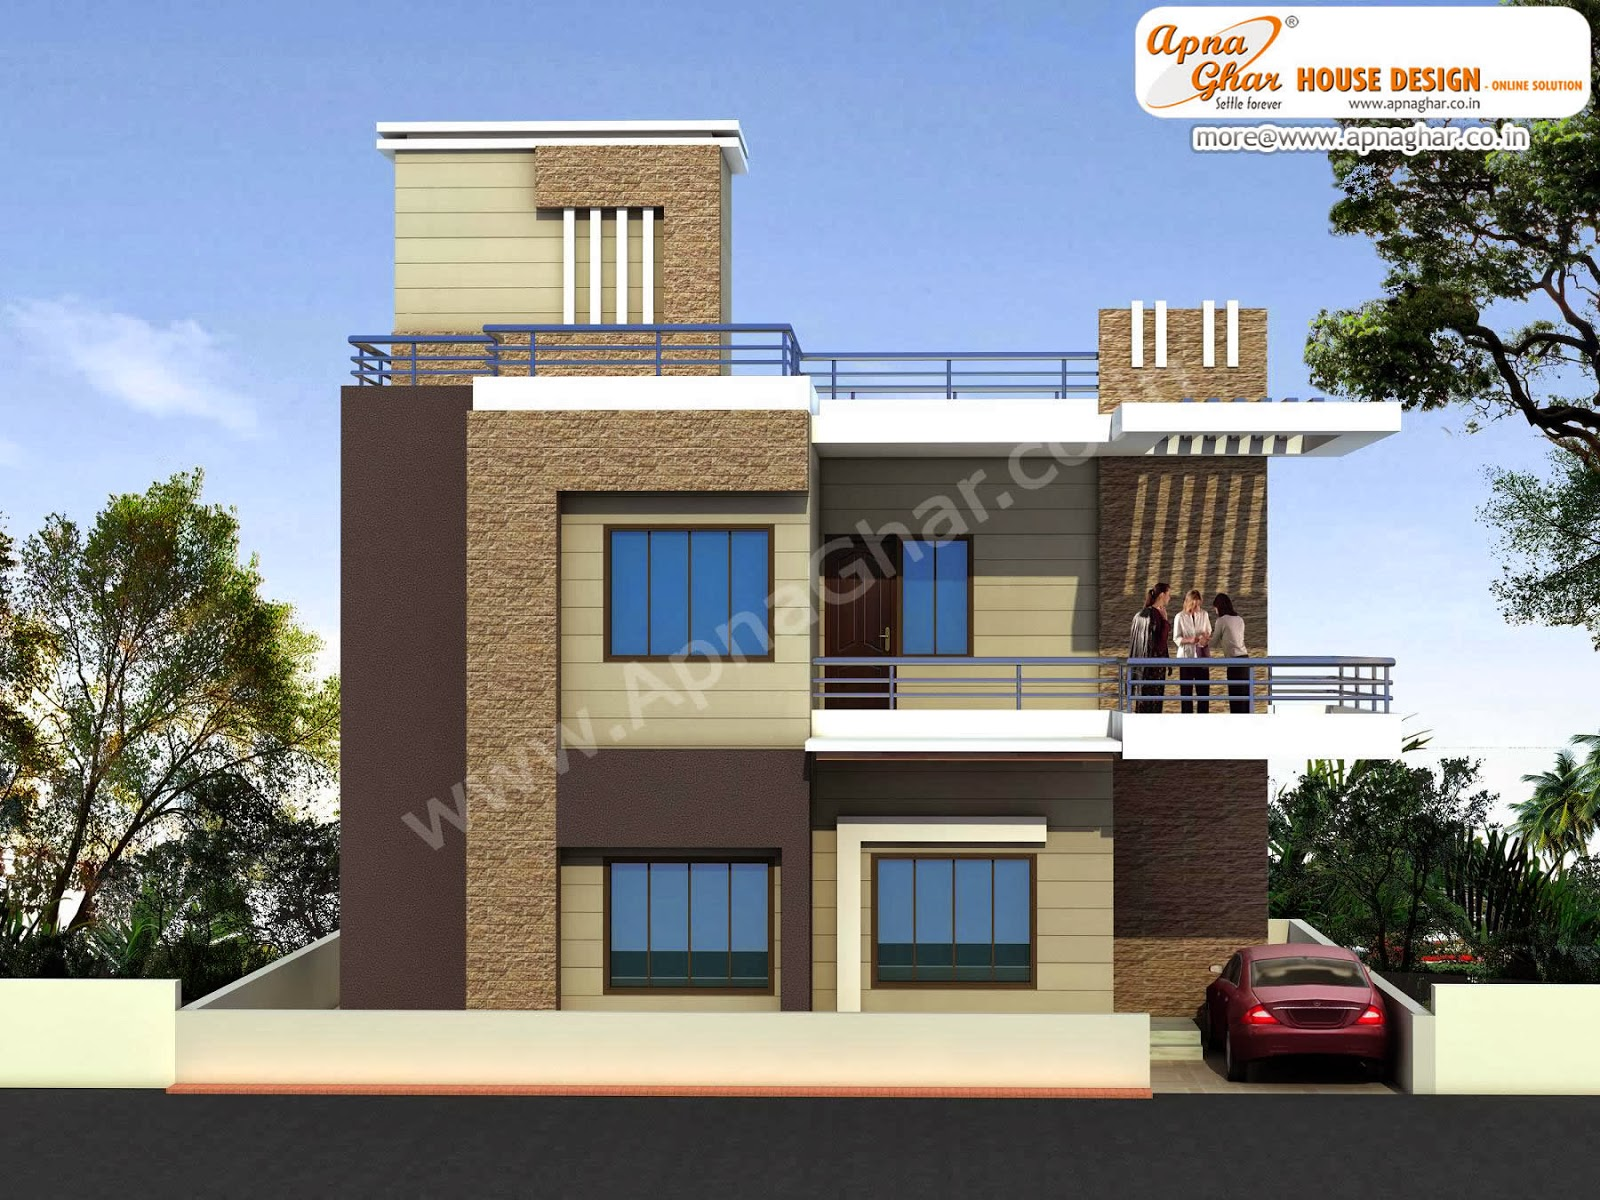 duplex house design apnaghar - Small Bungalow Elevation